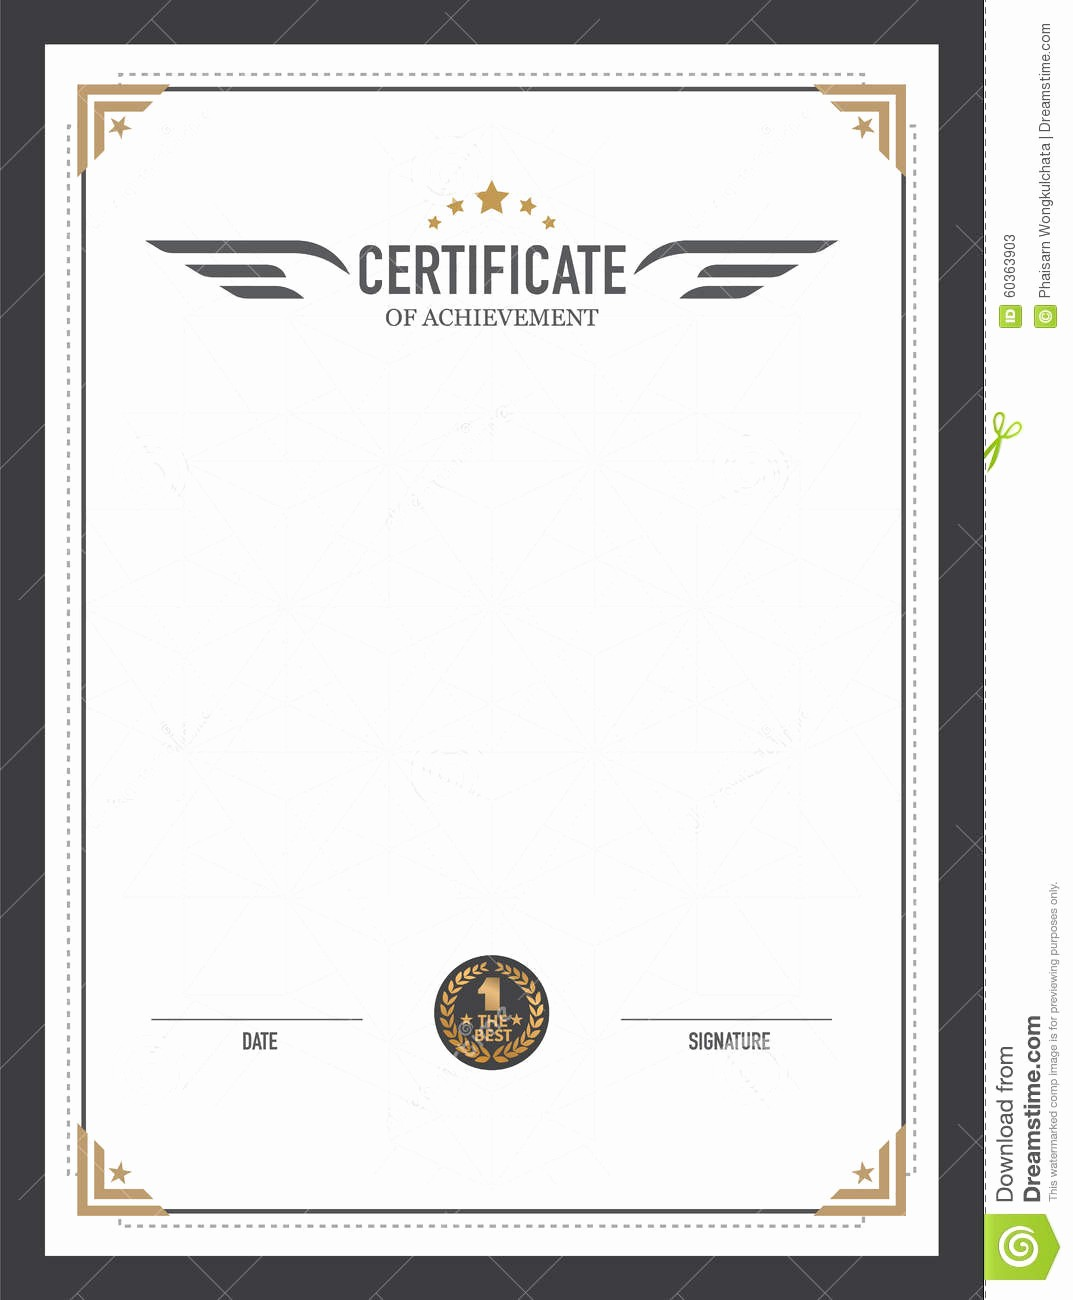 How to Design A Certificate Awesome Retro Certificate Design Template Stock Vector